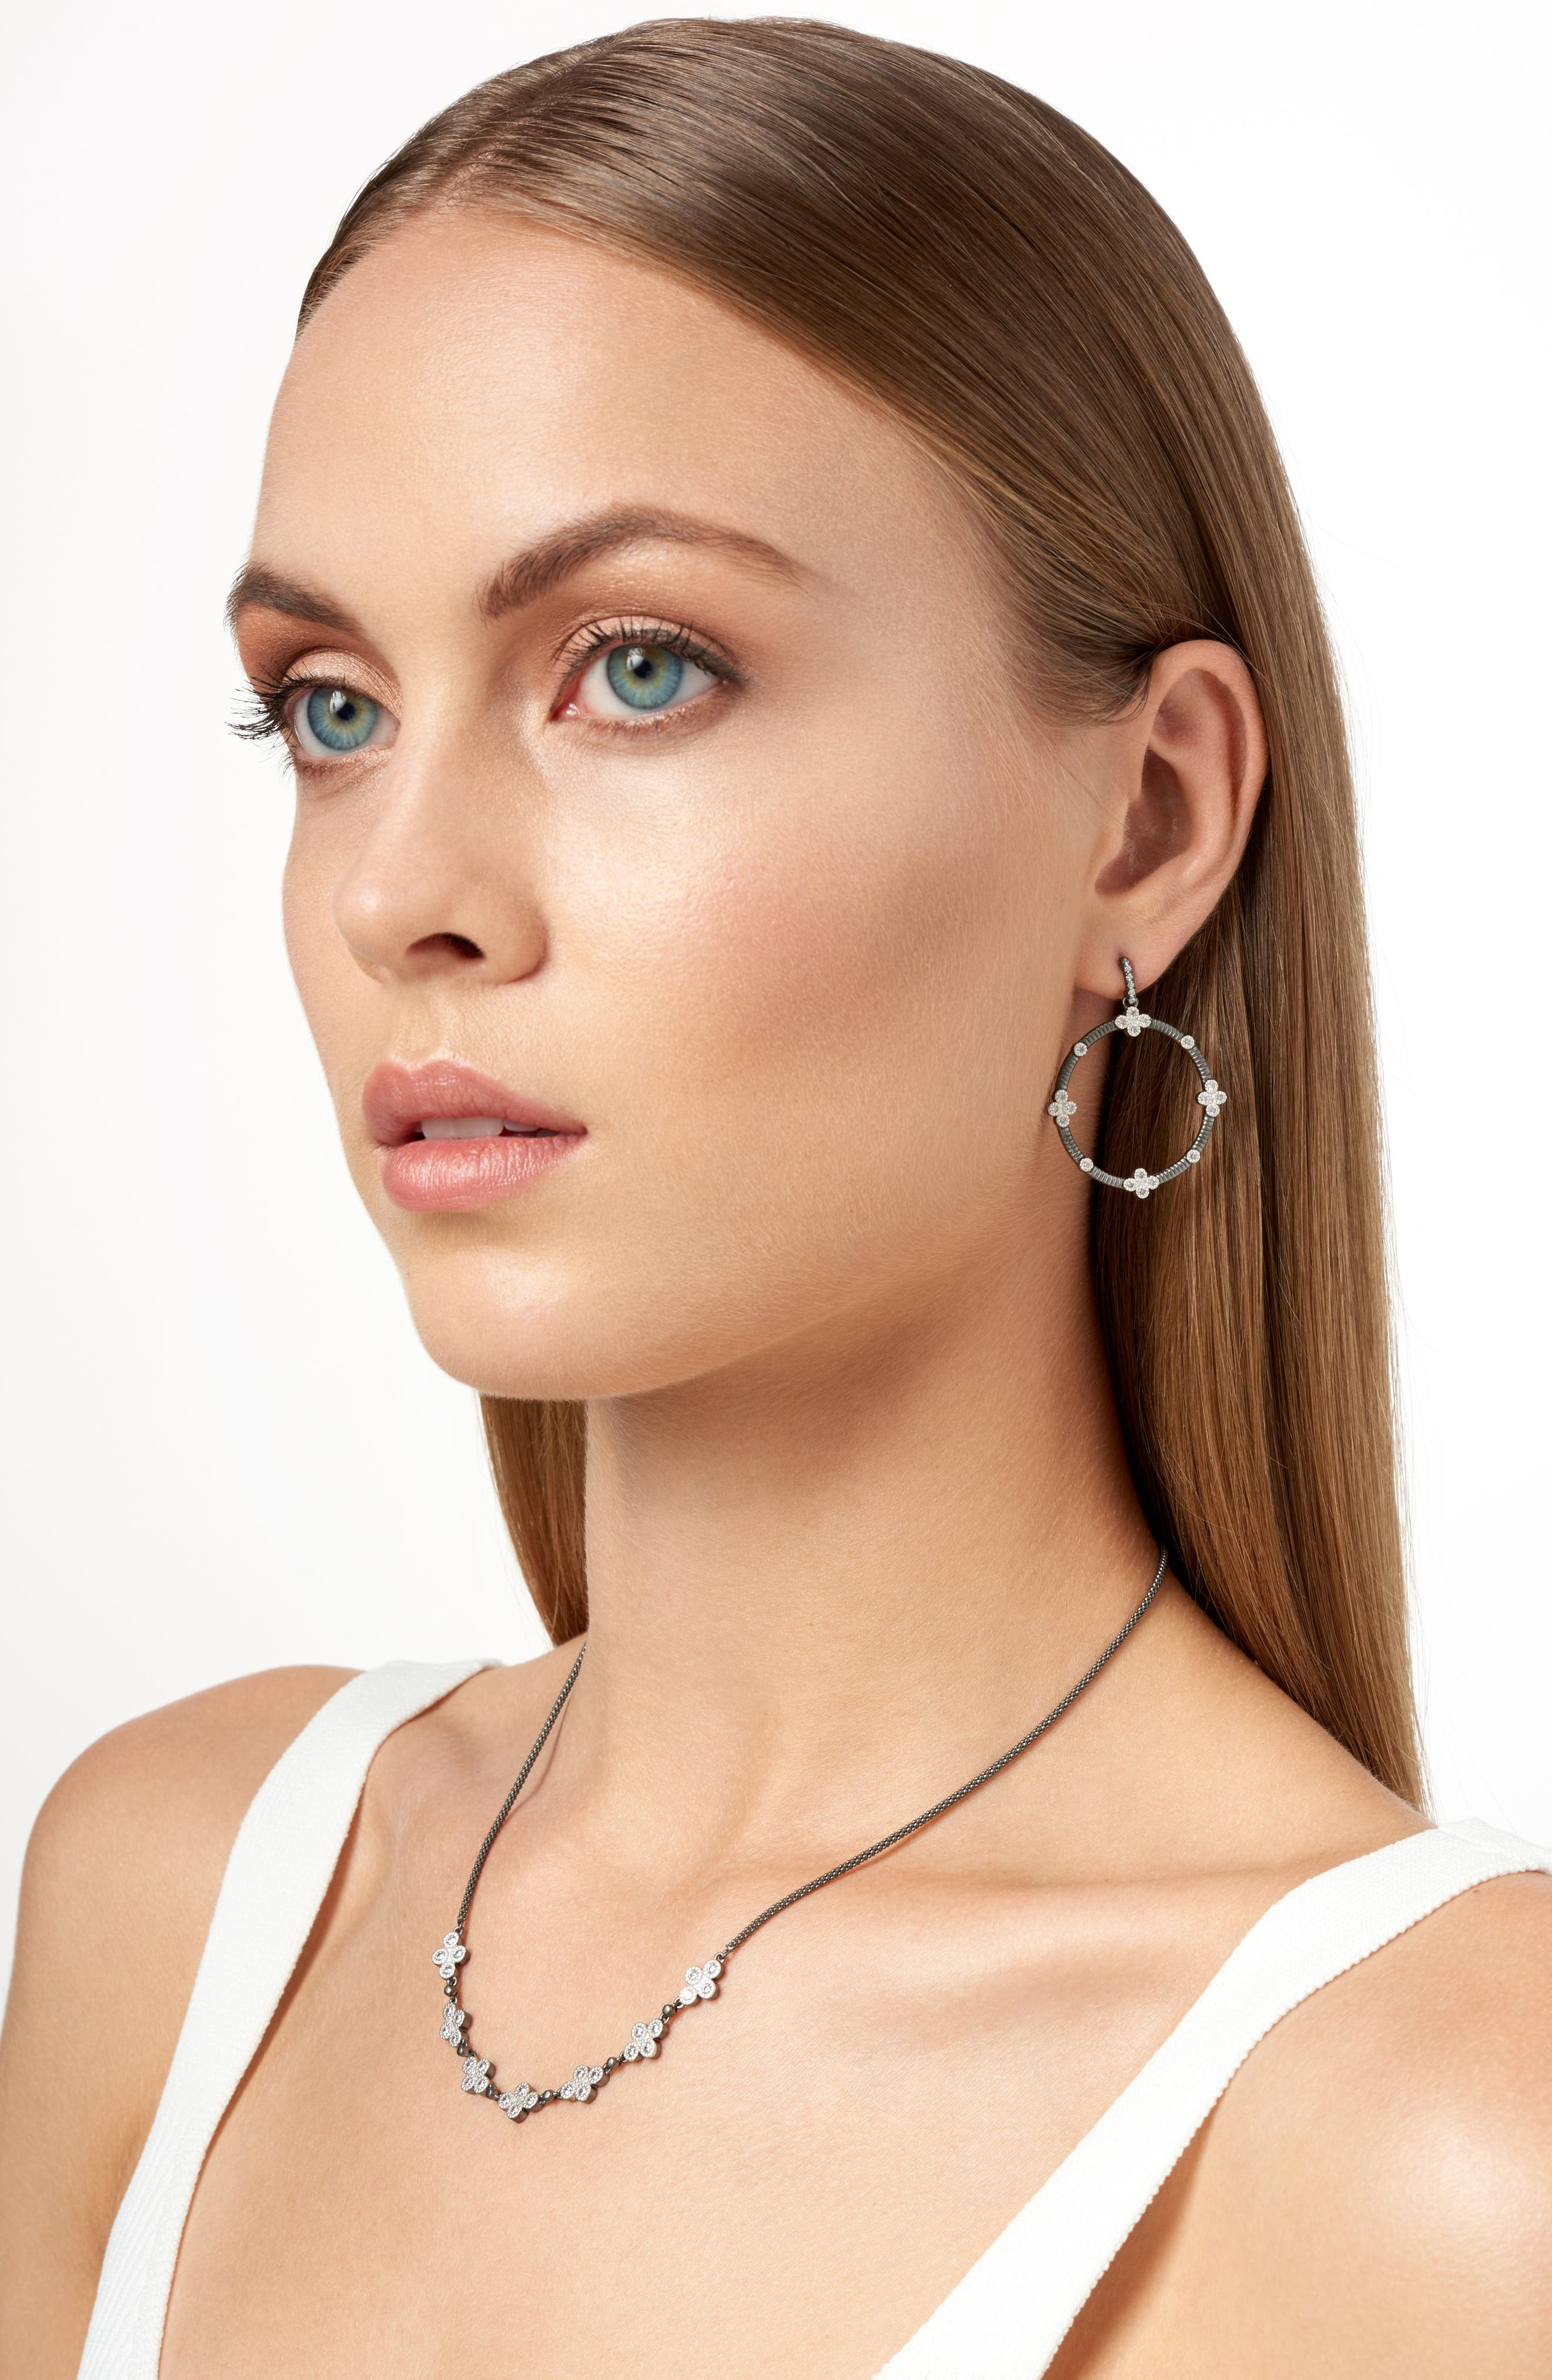 Four-Clover Point Frontal Hoop Earrings,                             Alternate thumbnail 3, color,                             Silver/ Black Rhodium